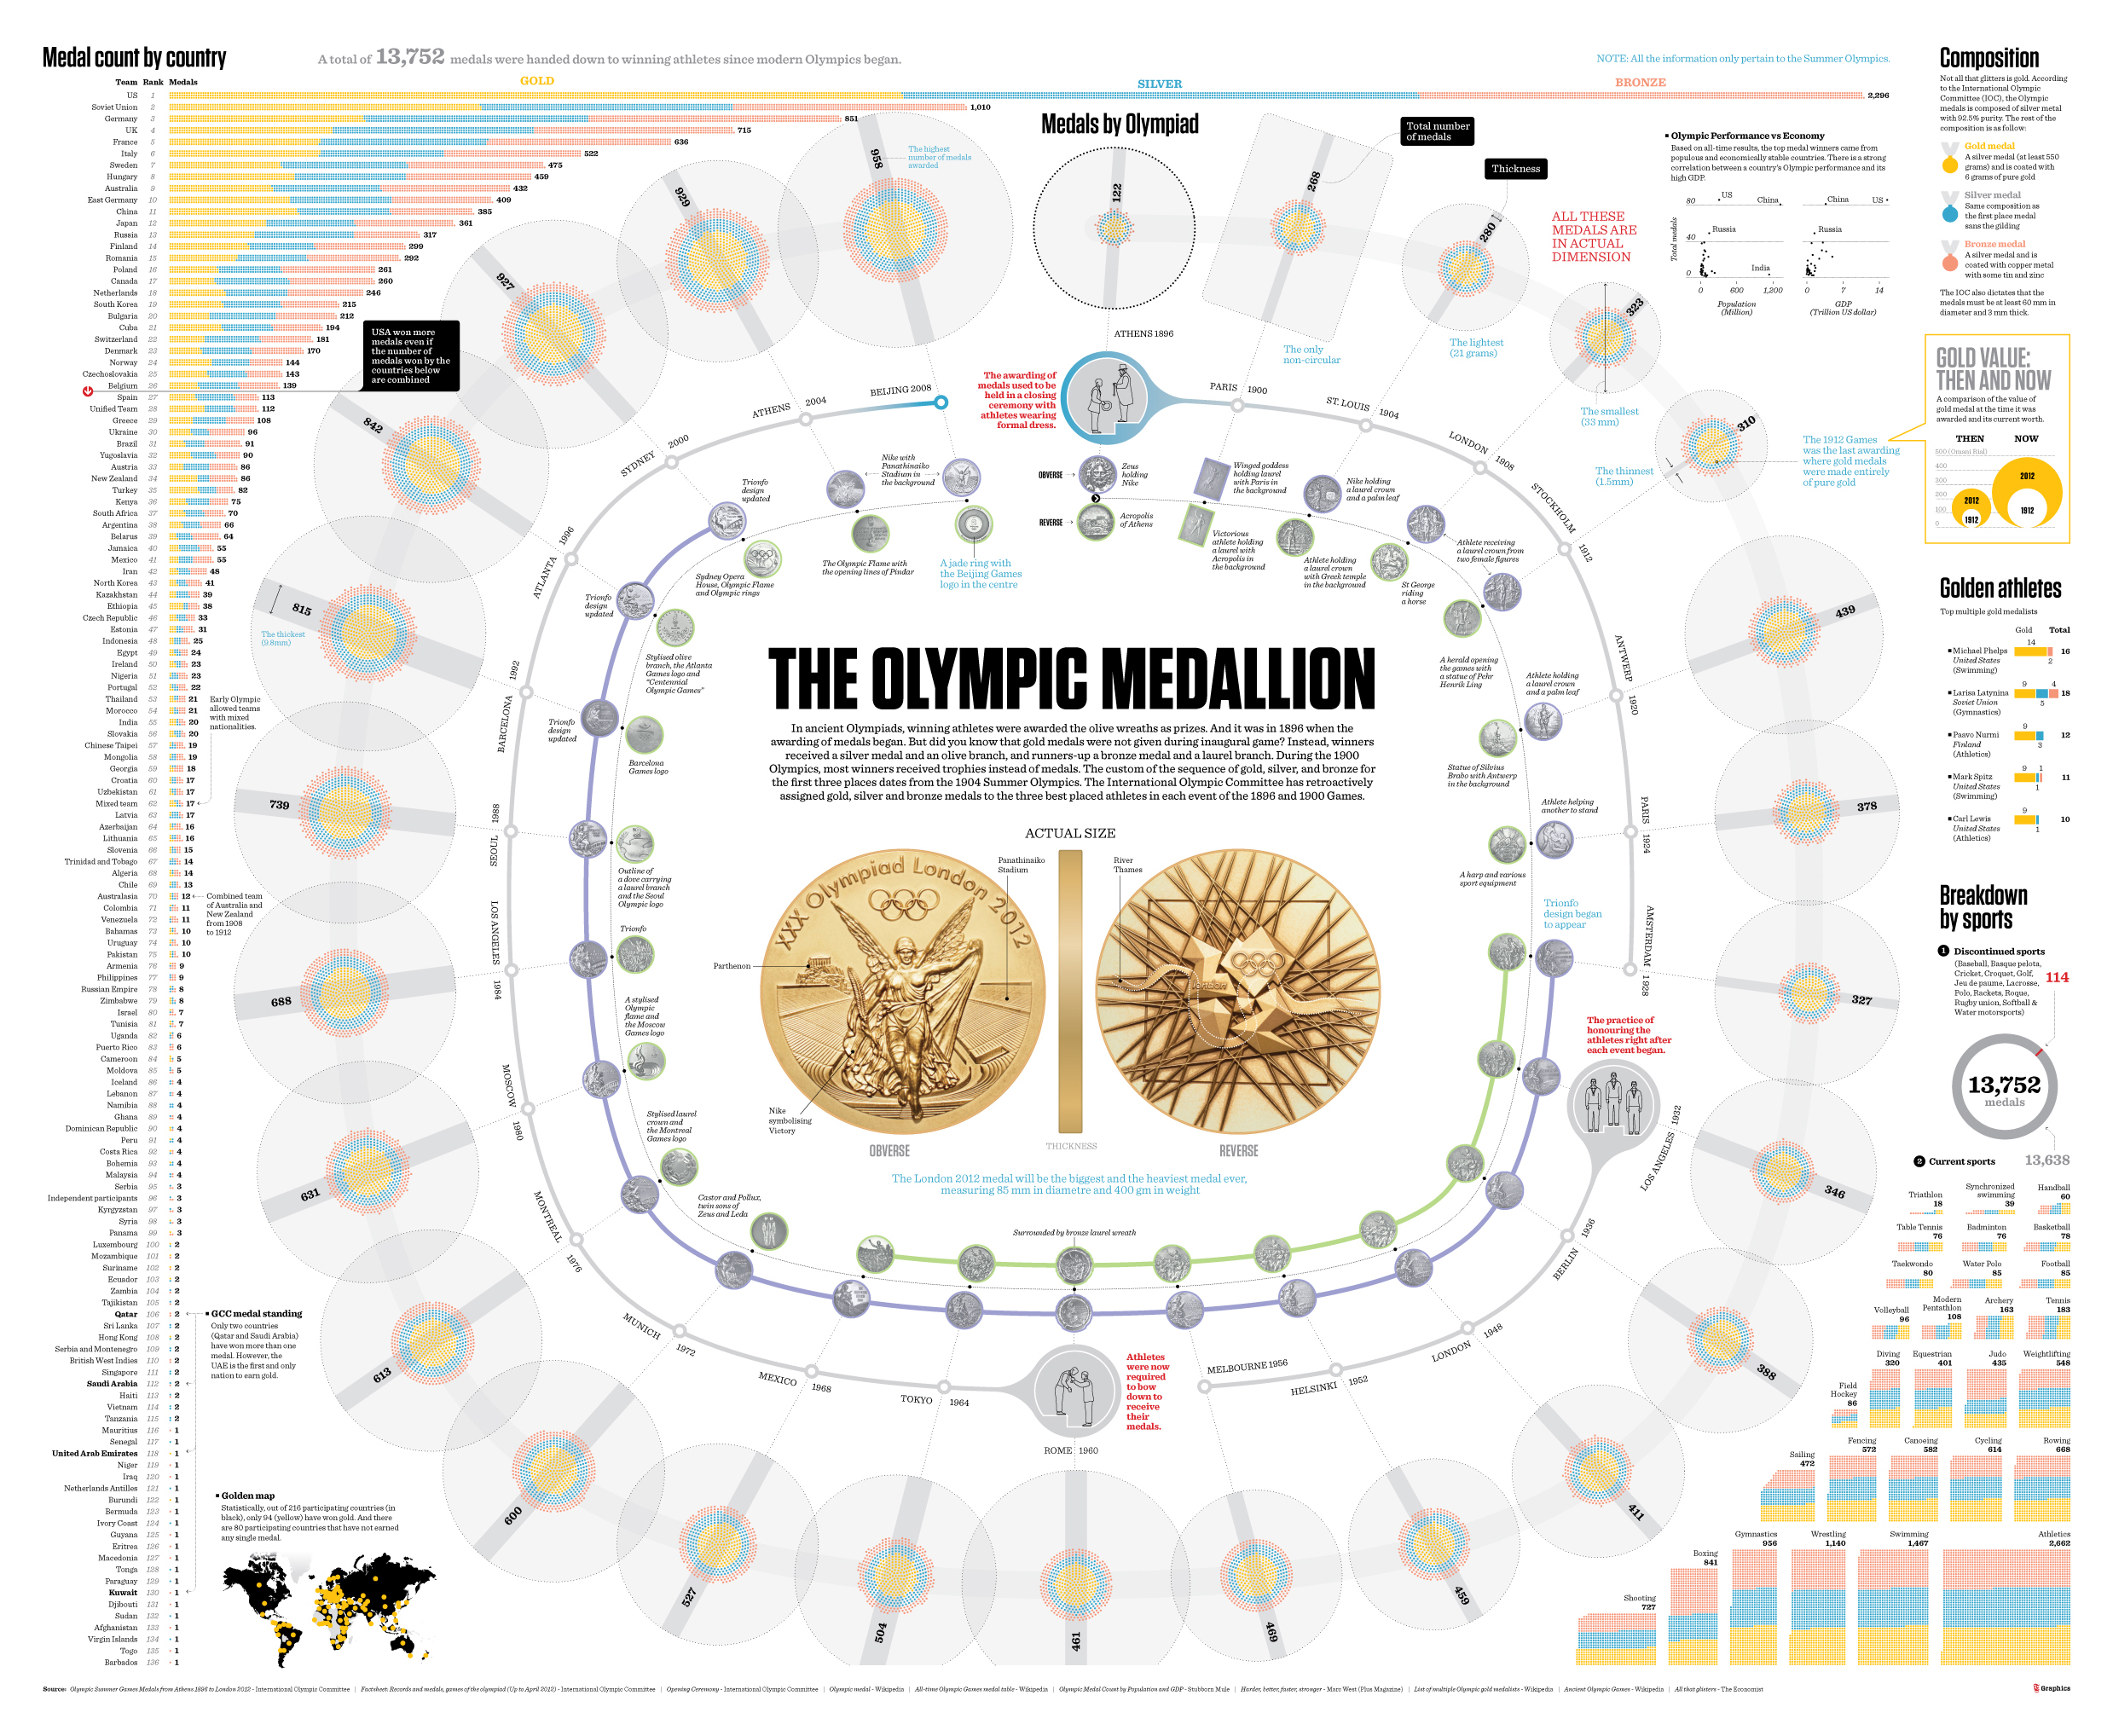 The olympic Medallion